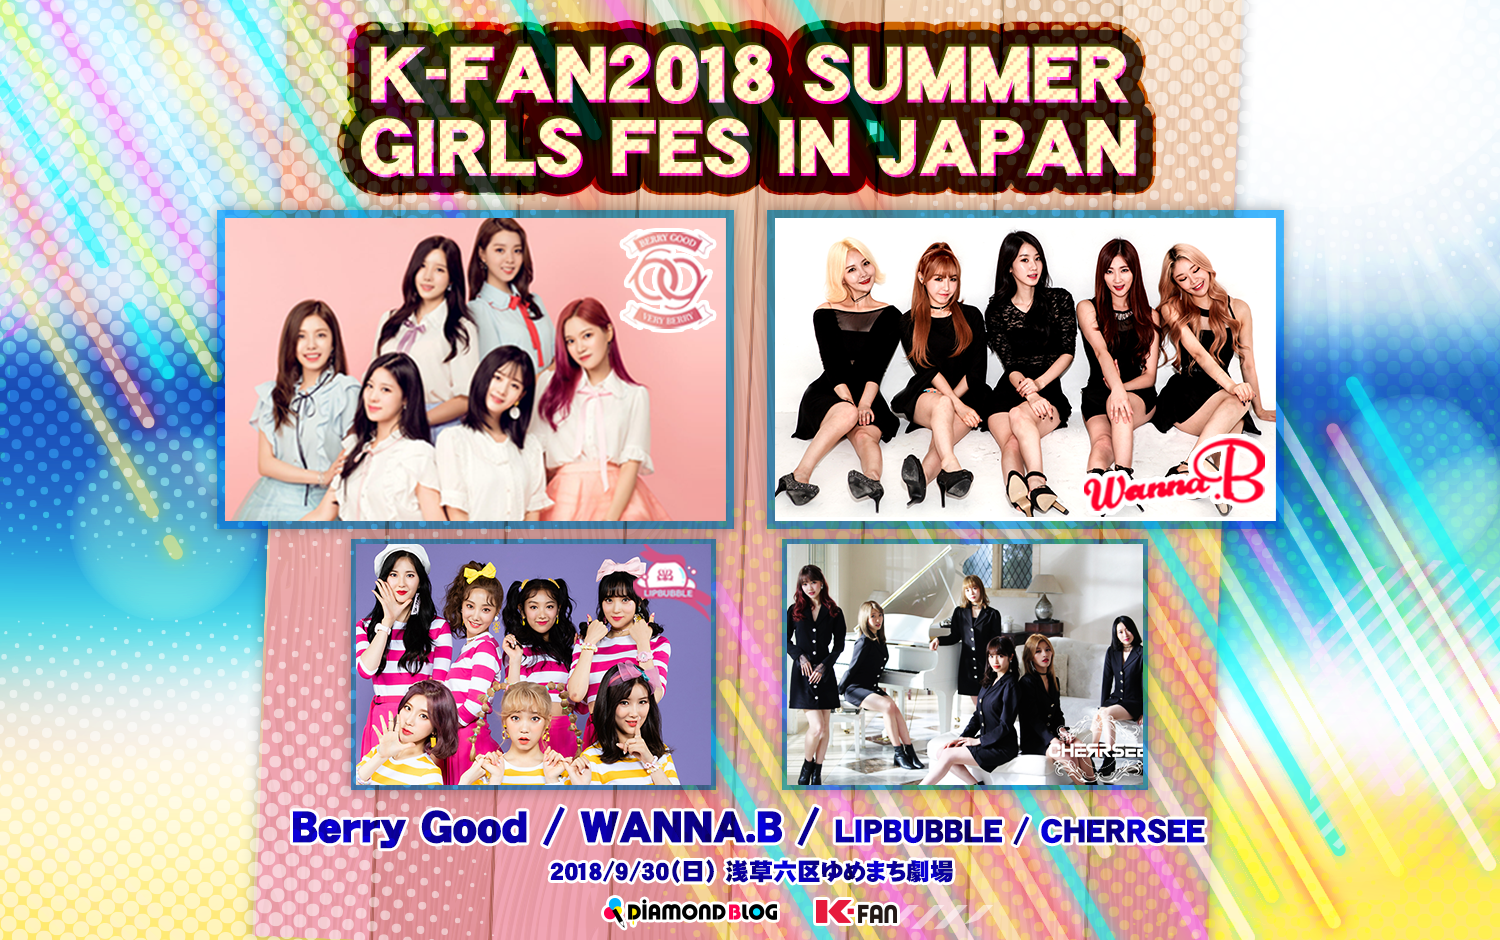 K-FAN 2018 SUMMER GIRLS FES IN JAPAN